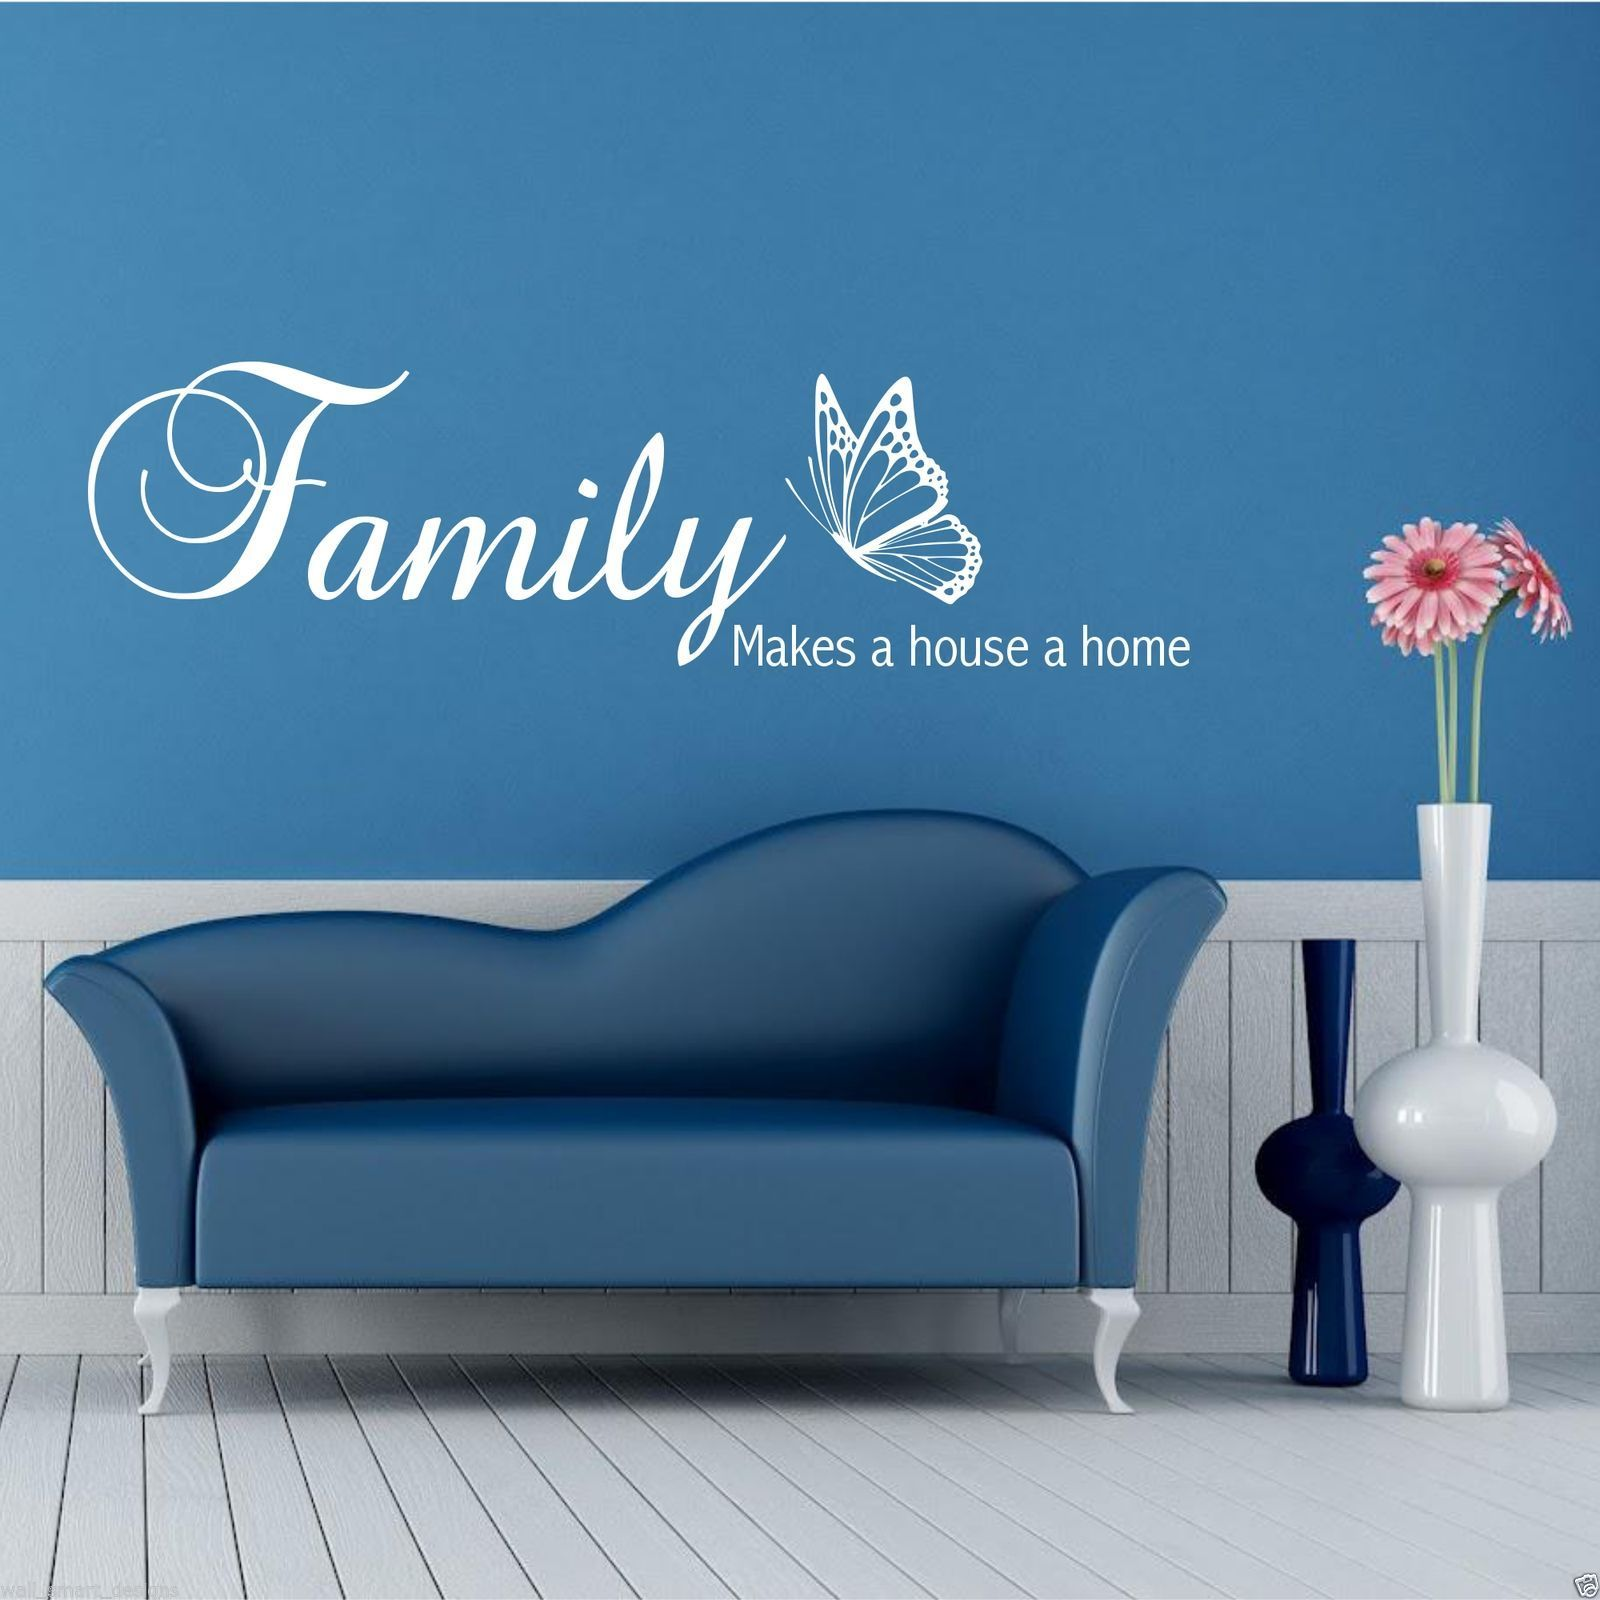 family home house wall quote sticker vinyl art decal transfer family home house wall quote sticker vinyl art